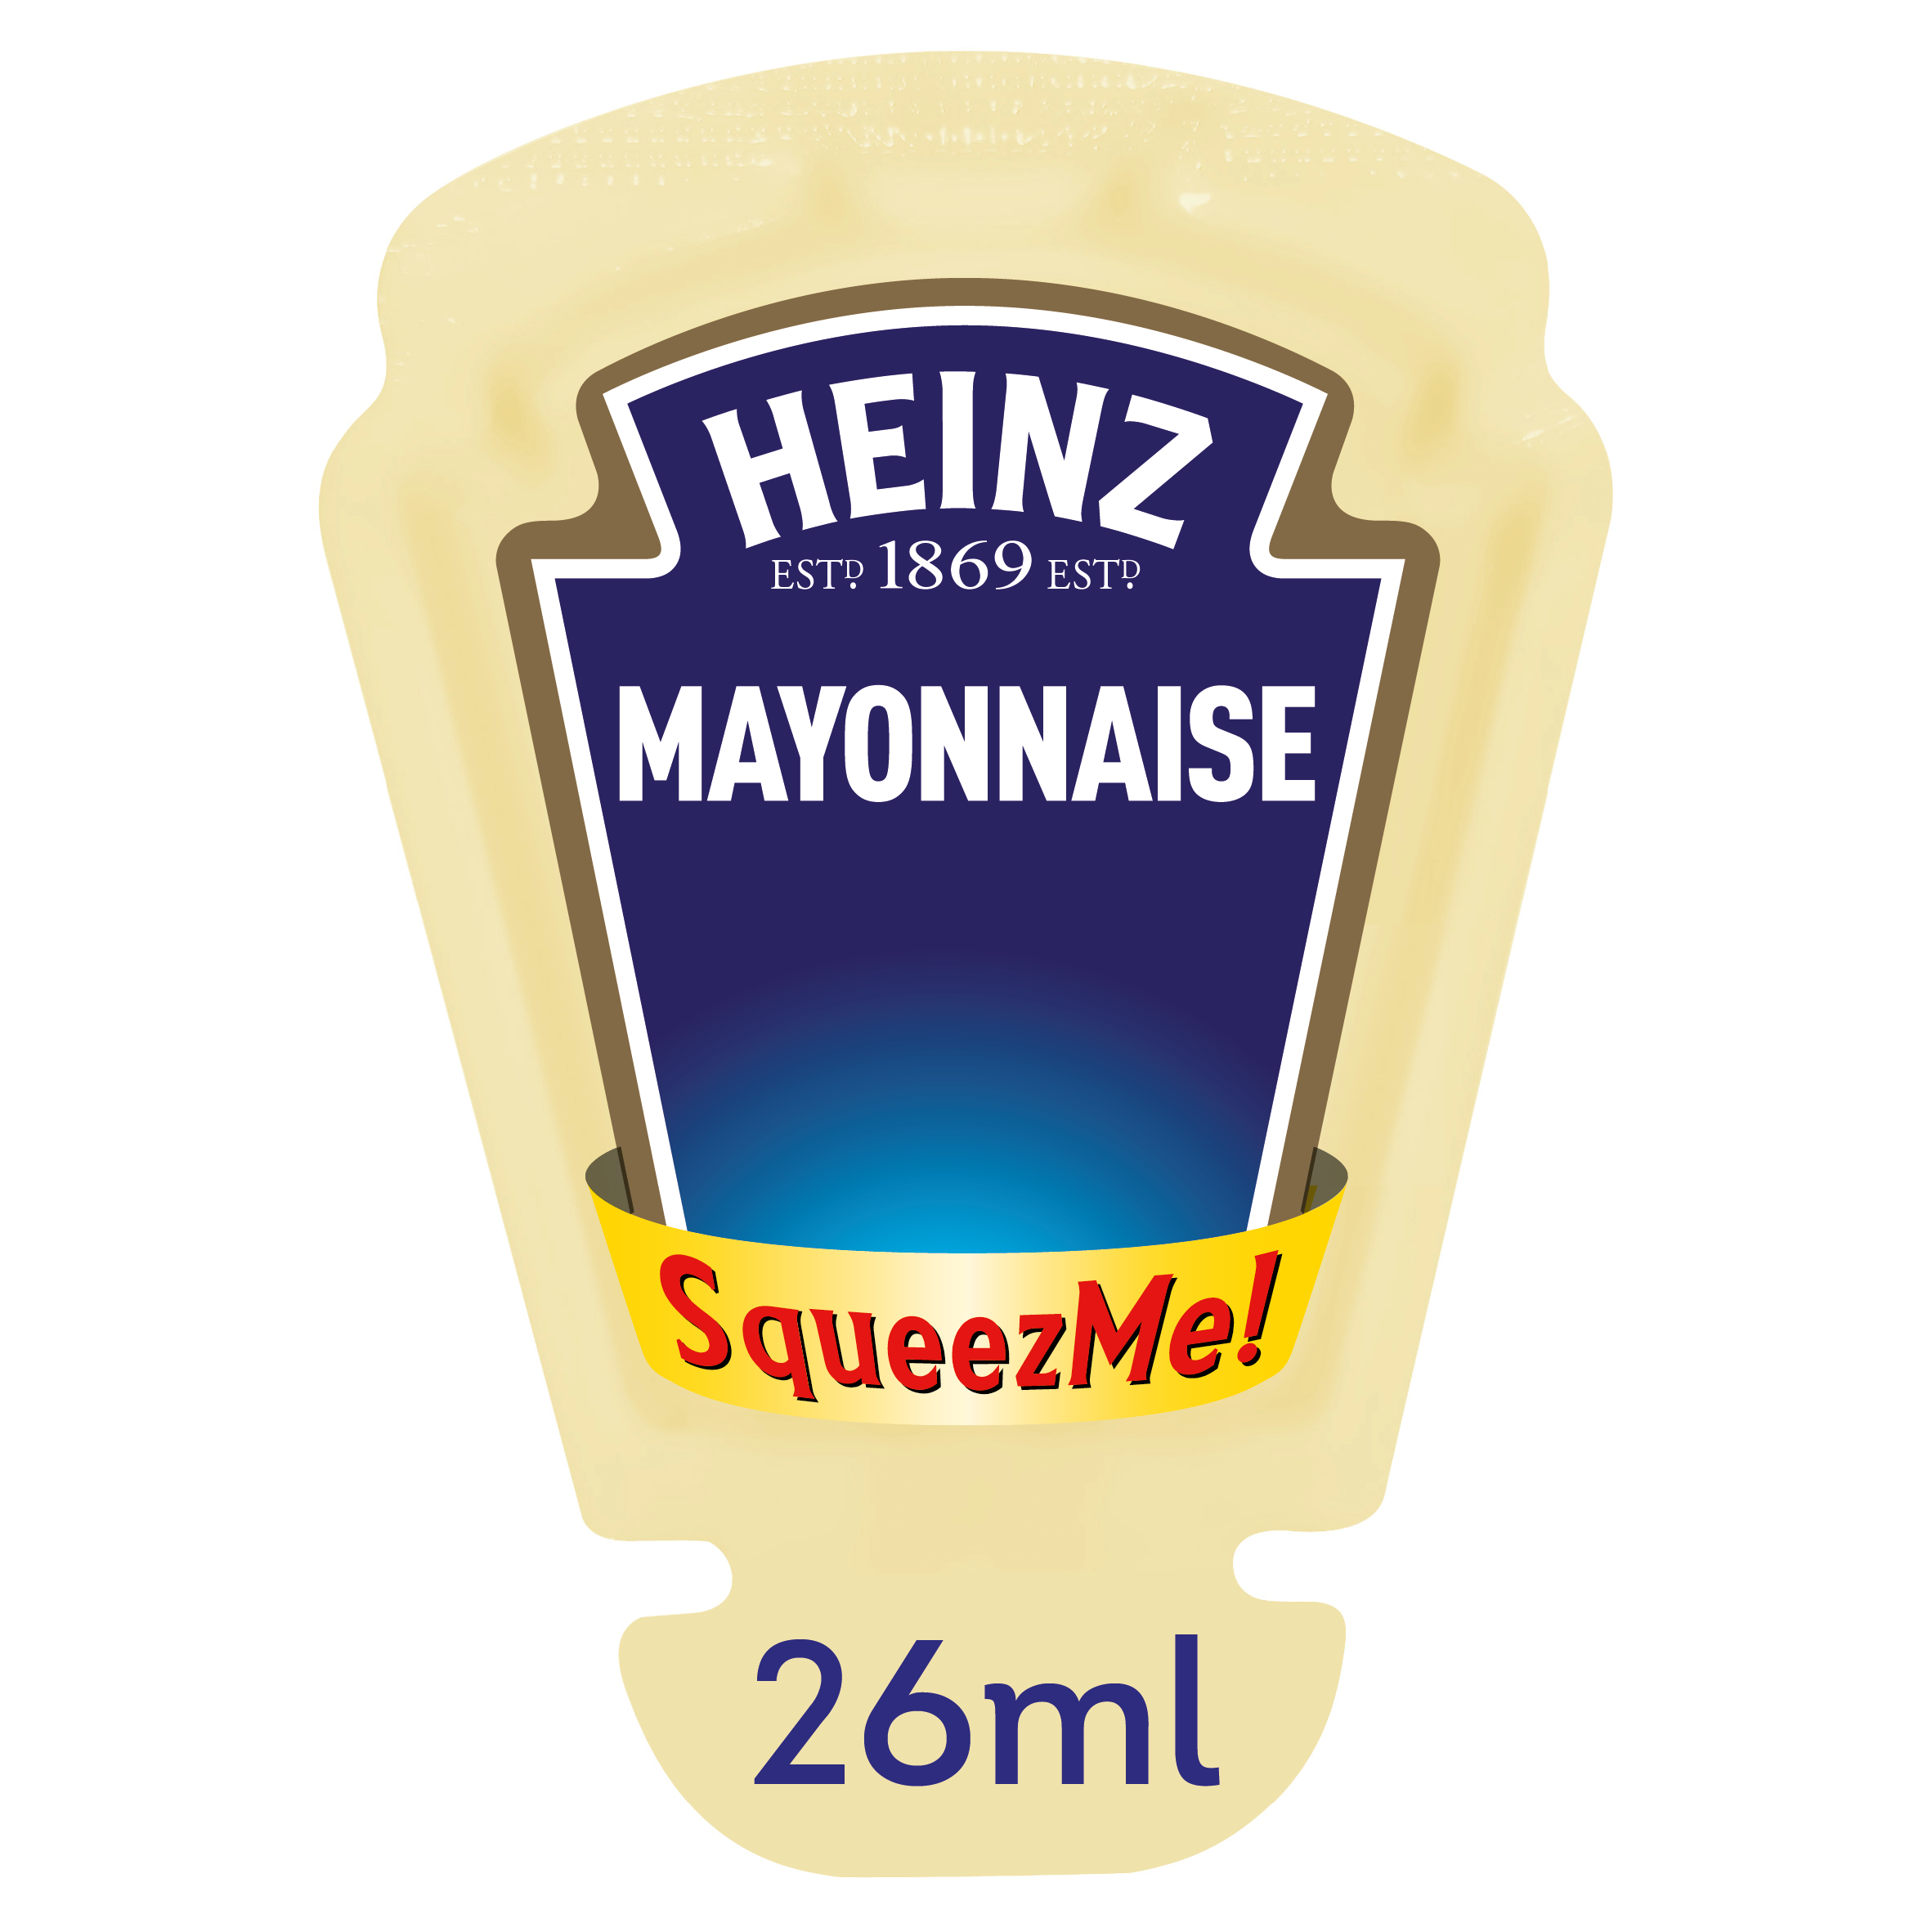 Heinz Mayonnaise 26ml Squeezme